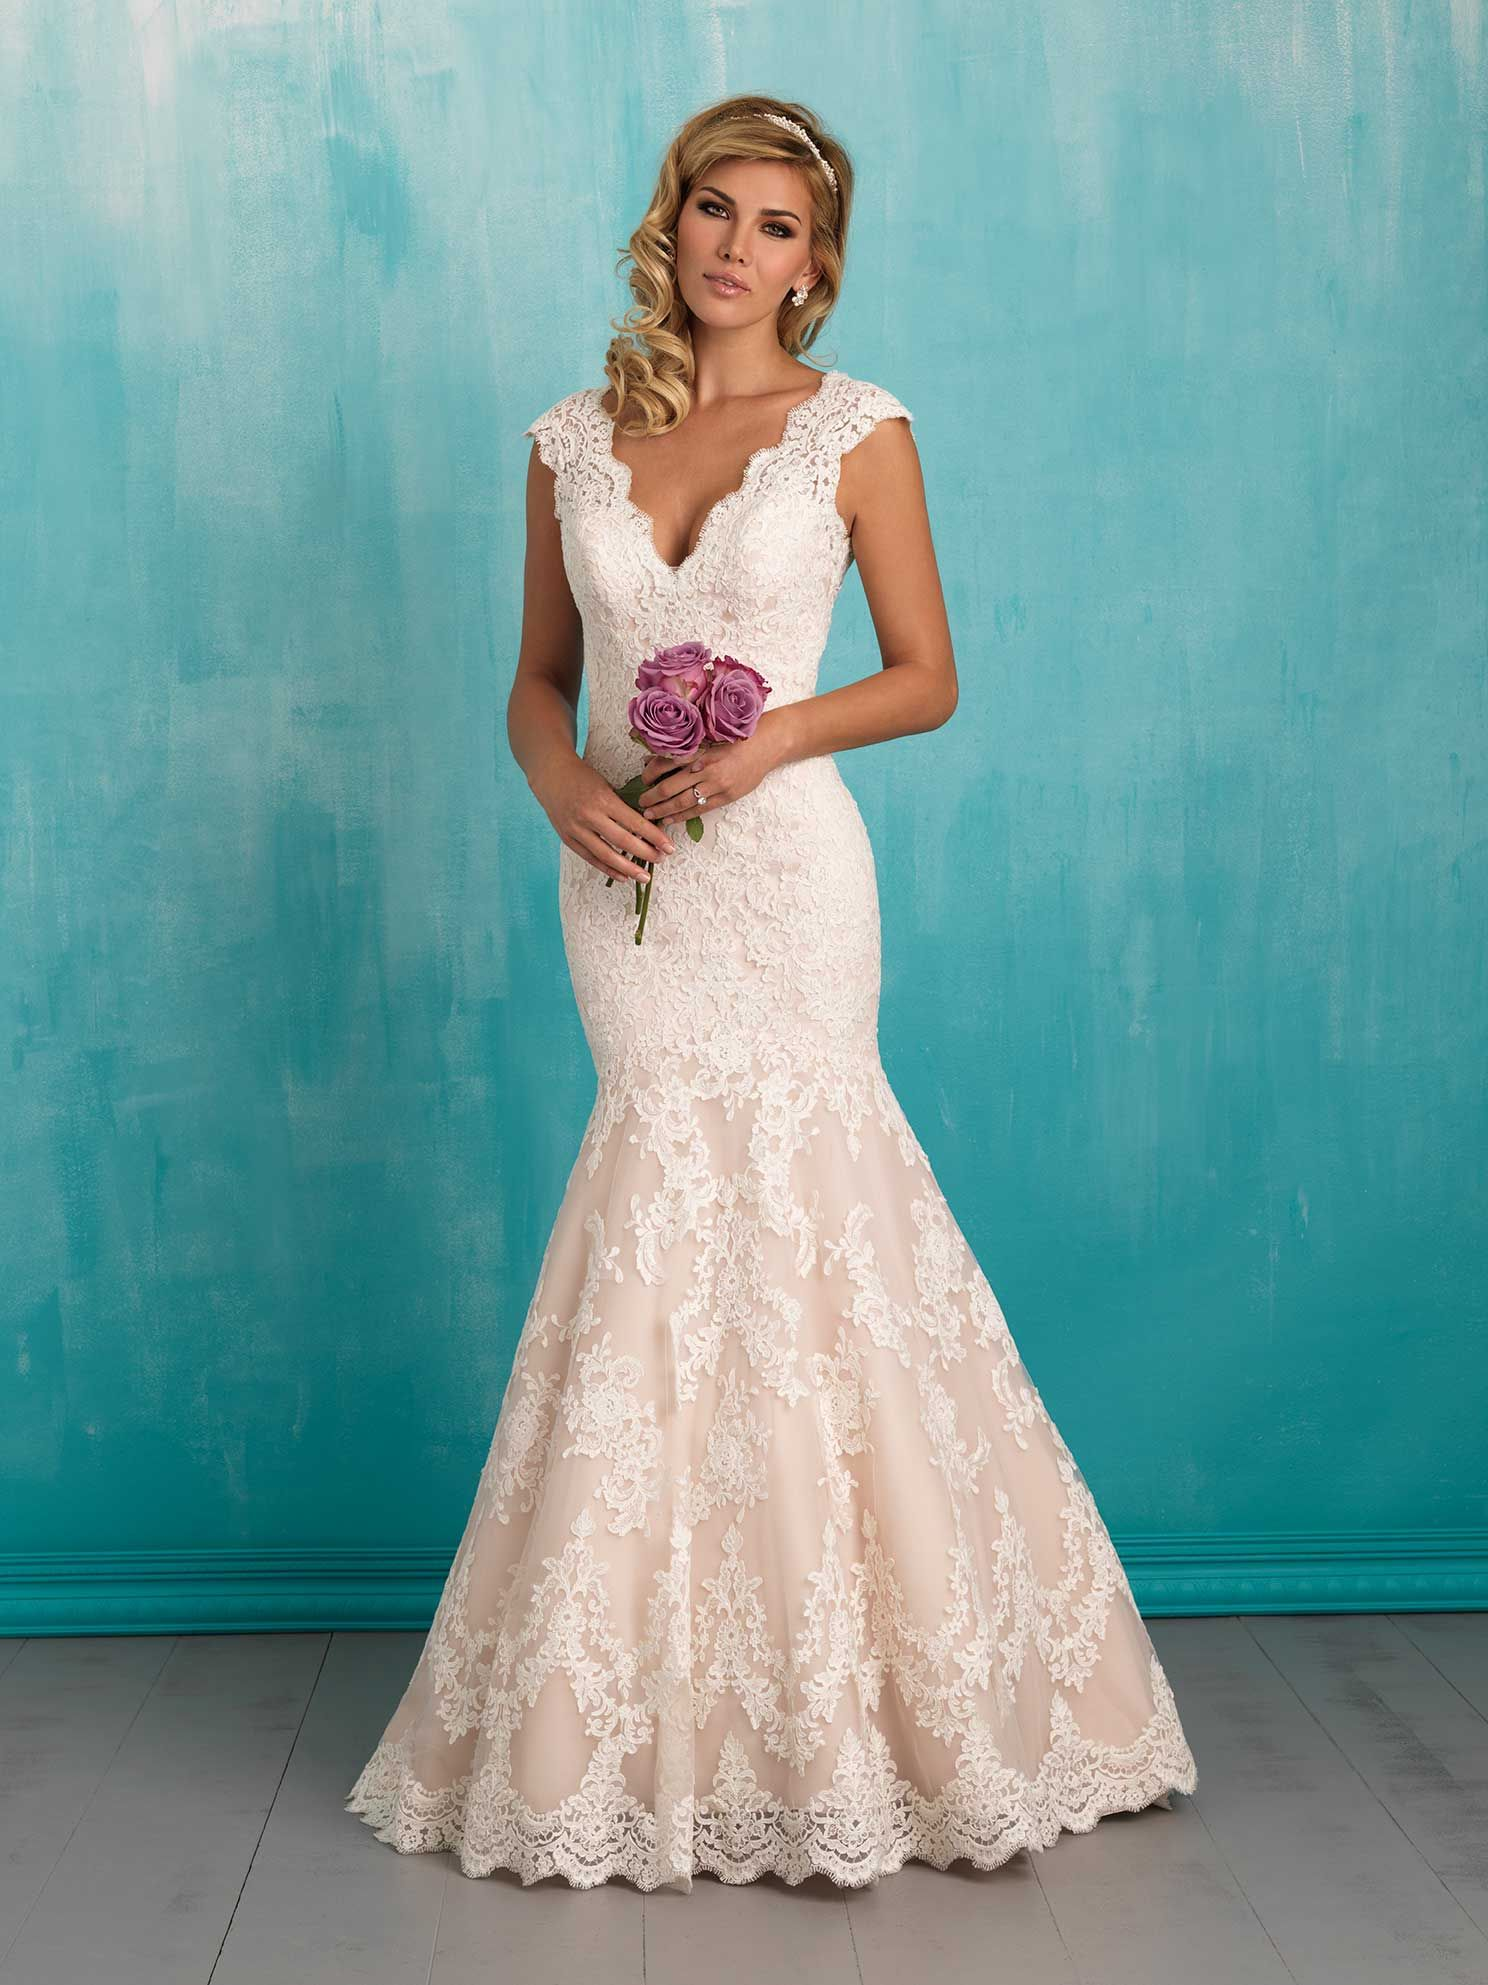 Style: 9320 Classic lace composes this simple yet striking gown ...